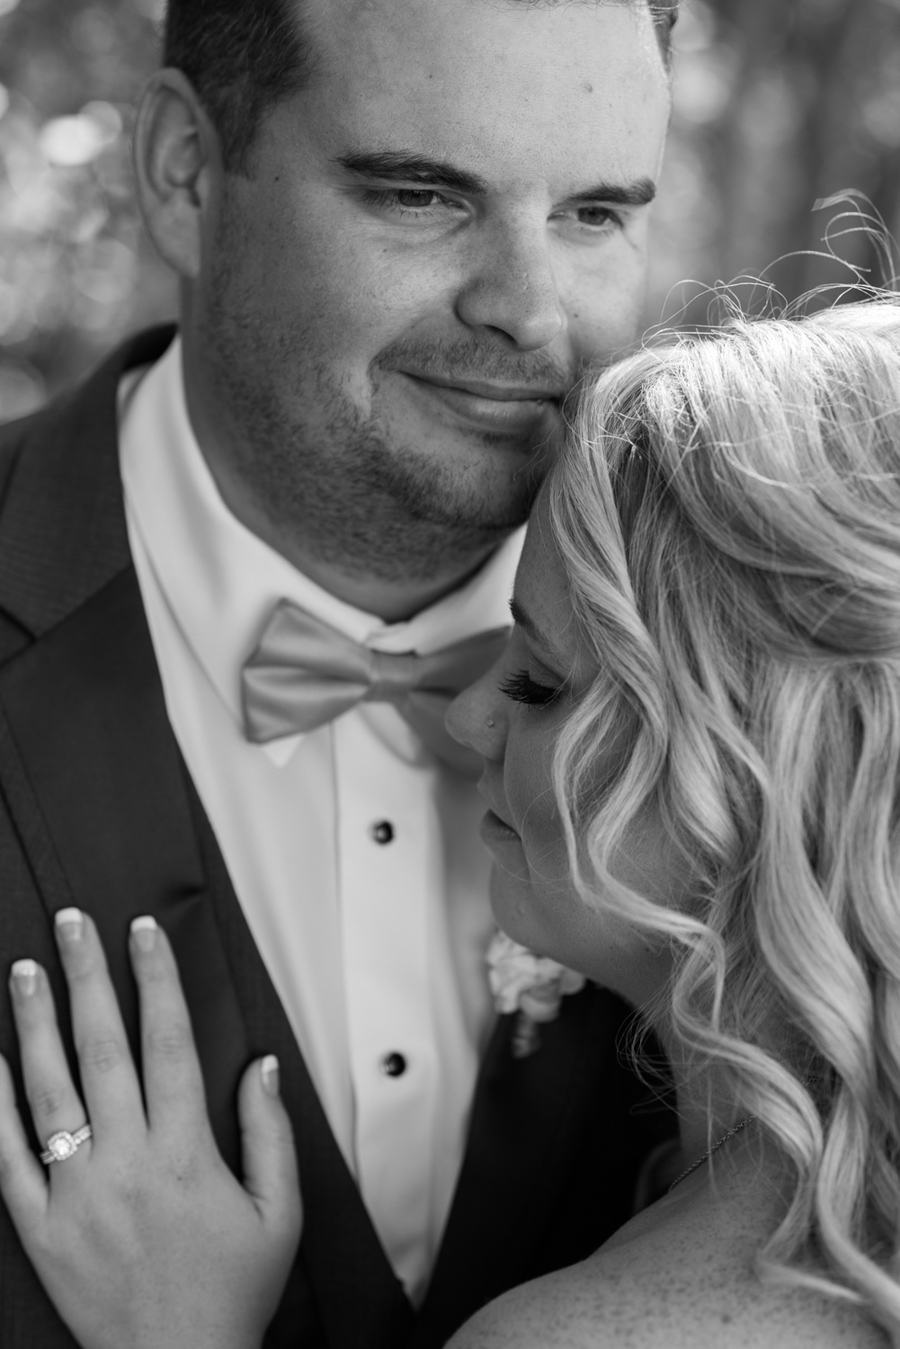 bbcollective_yeg_2016_ashleyandcraig_wedding_photography056.jpg